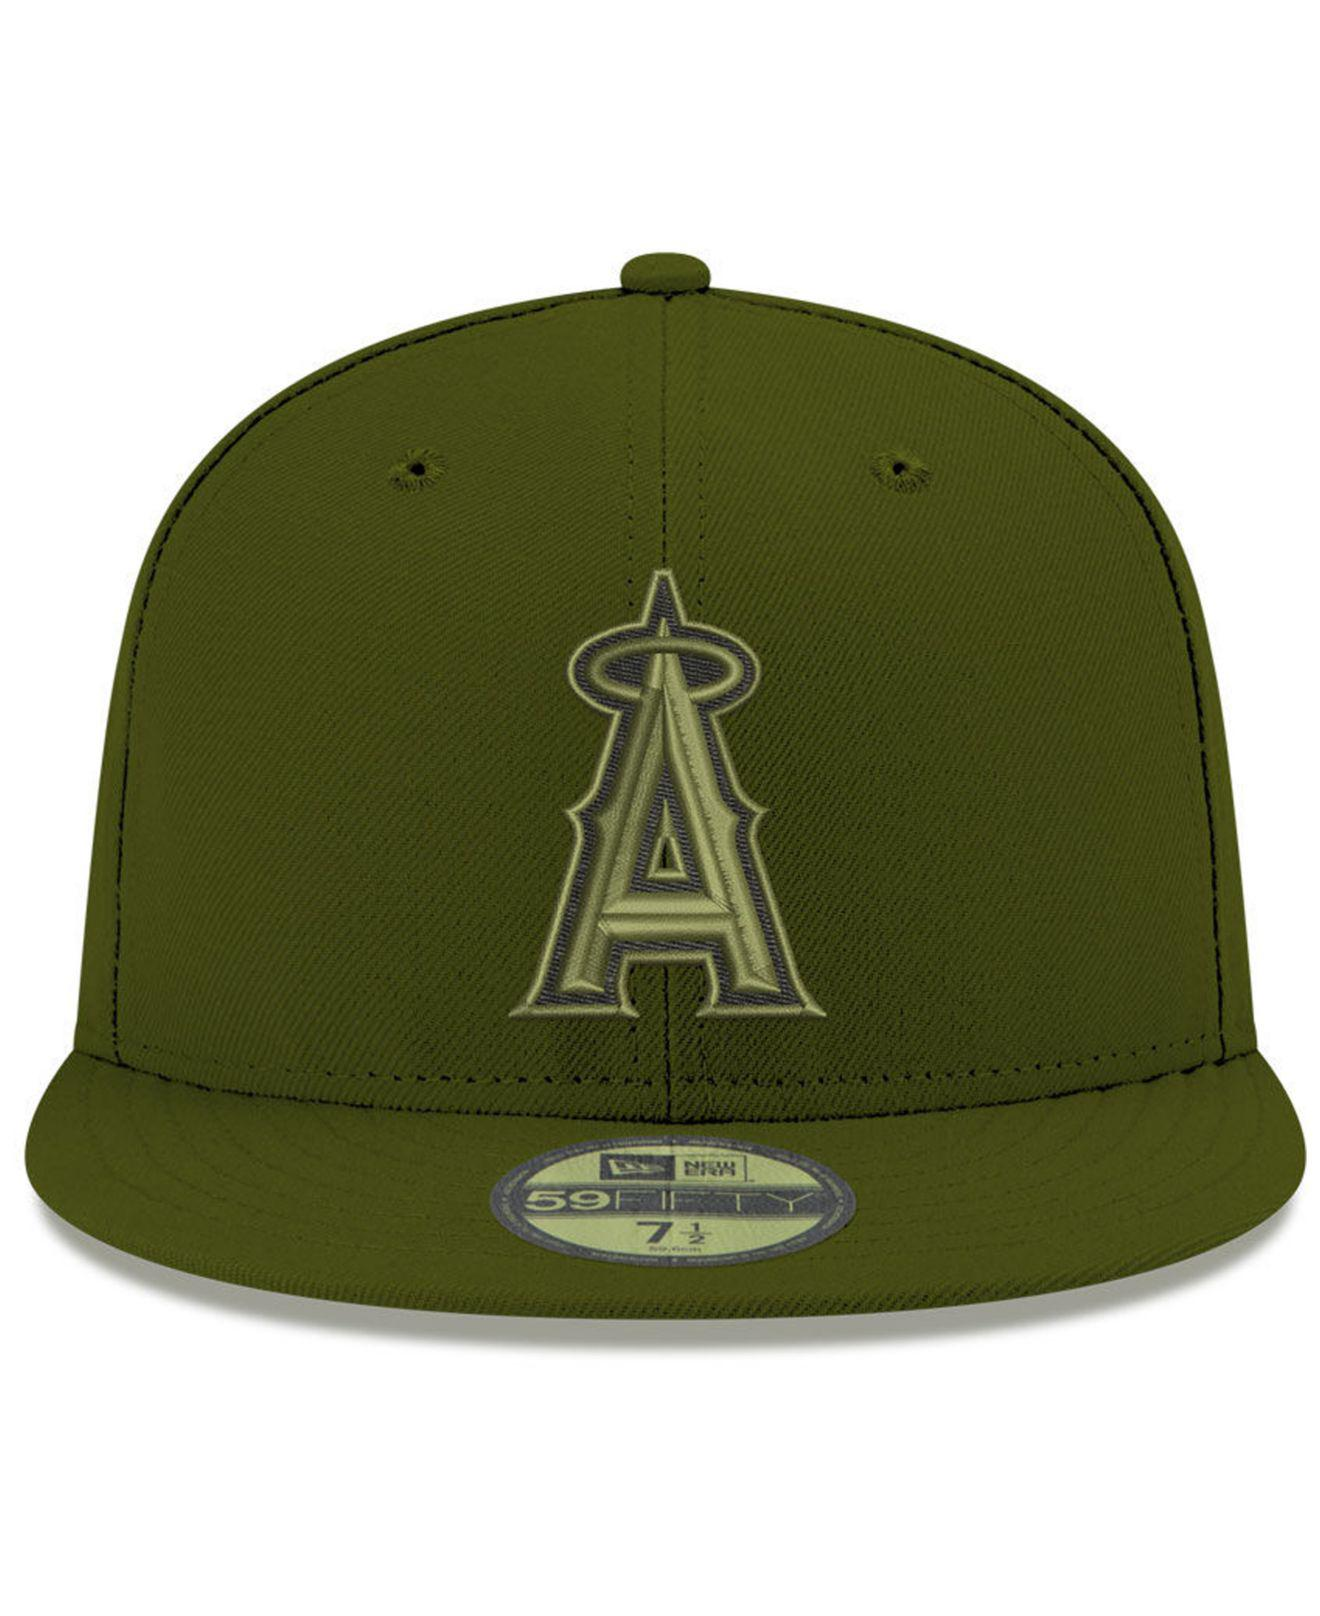 huge selection of 2856b 23d25 ... ireland lyst ktz los angeles angels reverse c dub 59fifty fitted cap in  green for men